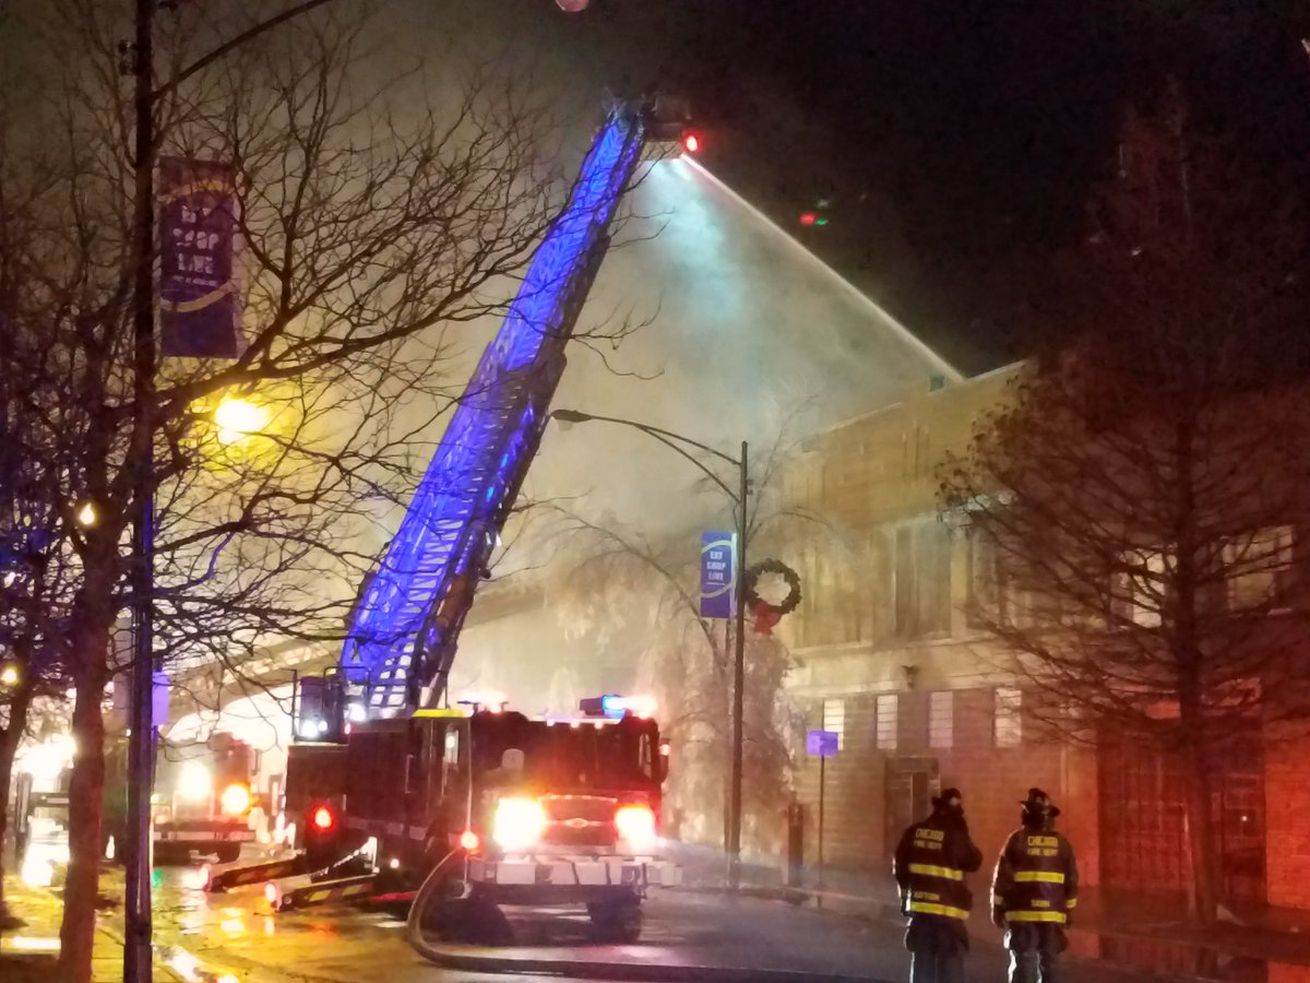 This fire destroyed Capri's Pizza of South Chicago